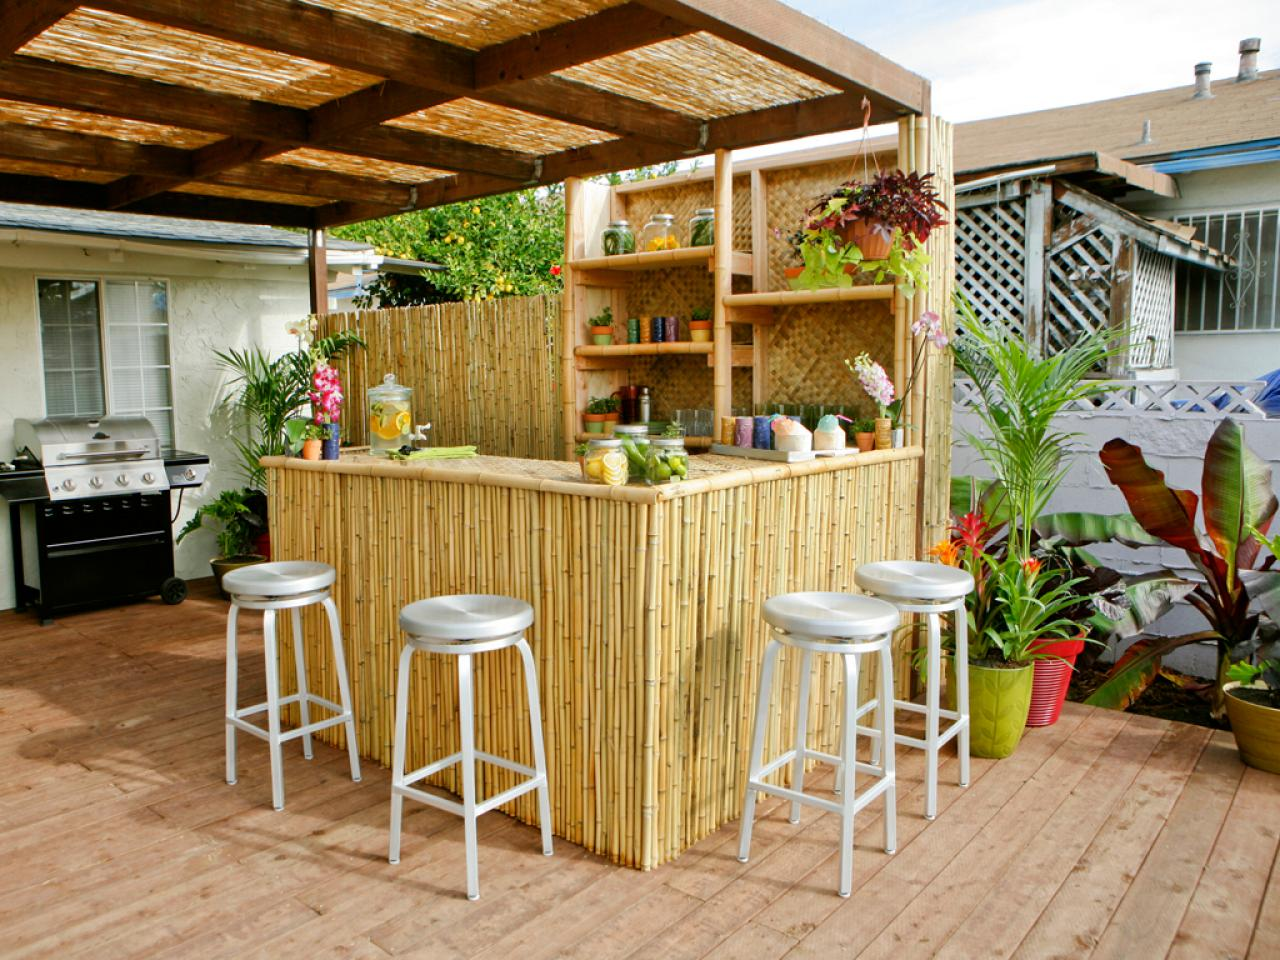 outdoor bar ideas outdoor kitchen bar ideas QLUWIRN